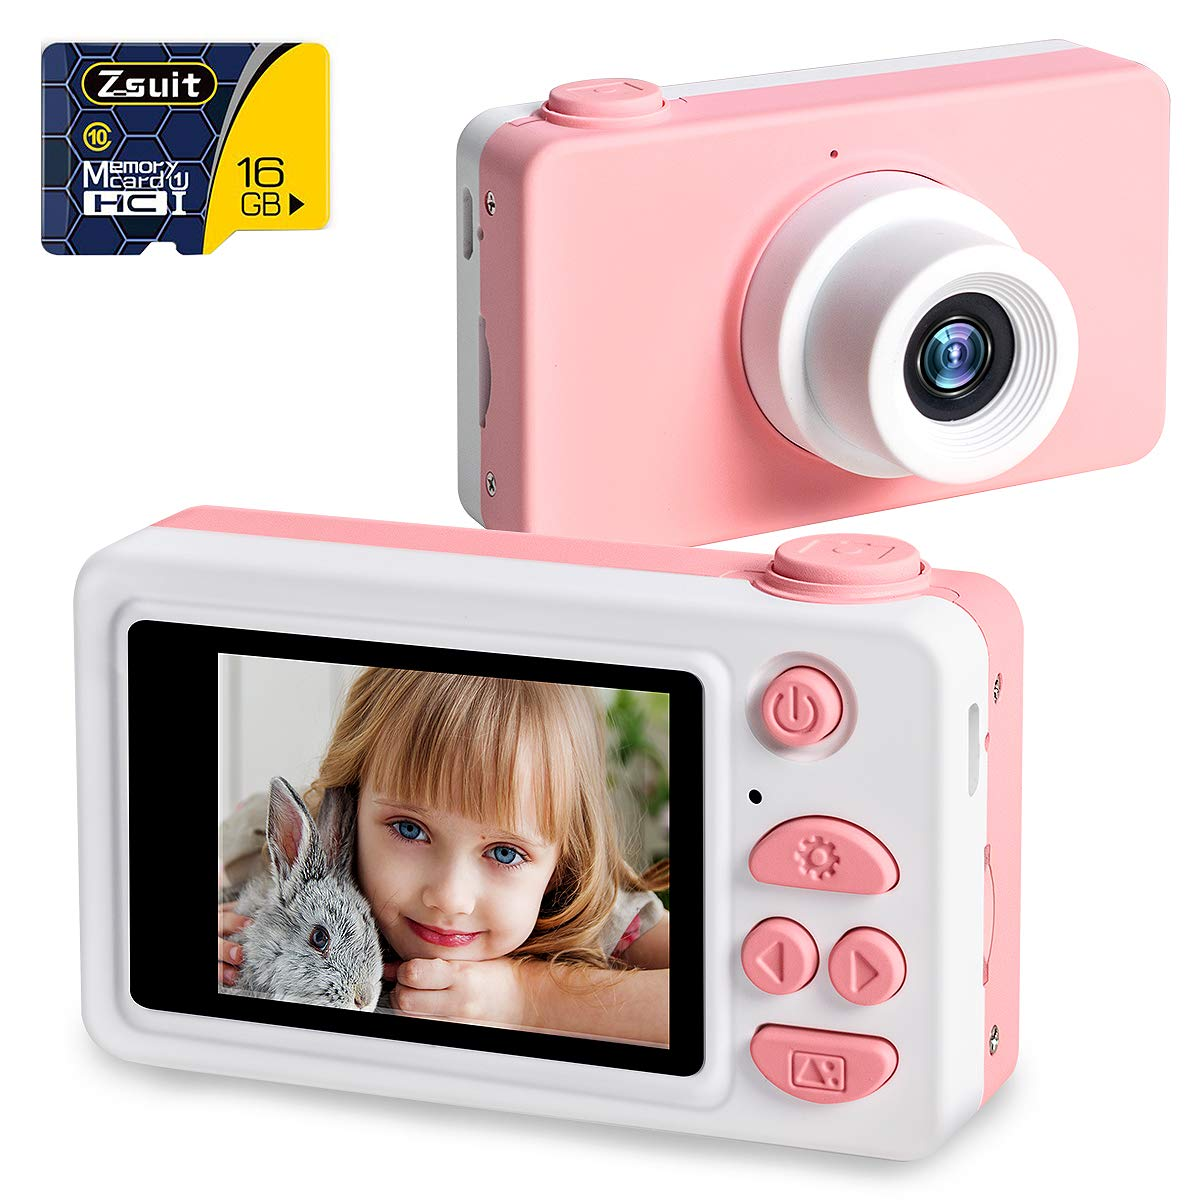 NEKAN Kids Digital Camera for Girls 8MP 1080P HD Photo//Video Camera Rechargeable Childrens Camera with 2.0 inch LCD Screen and 16GB SD Card Birthday Festival Toy Gift Giraffe Case